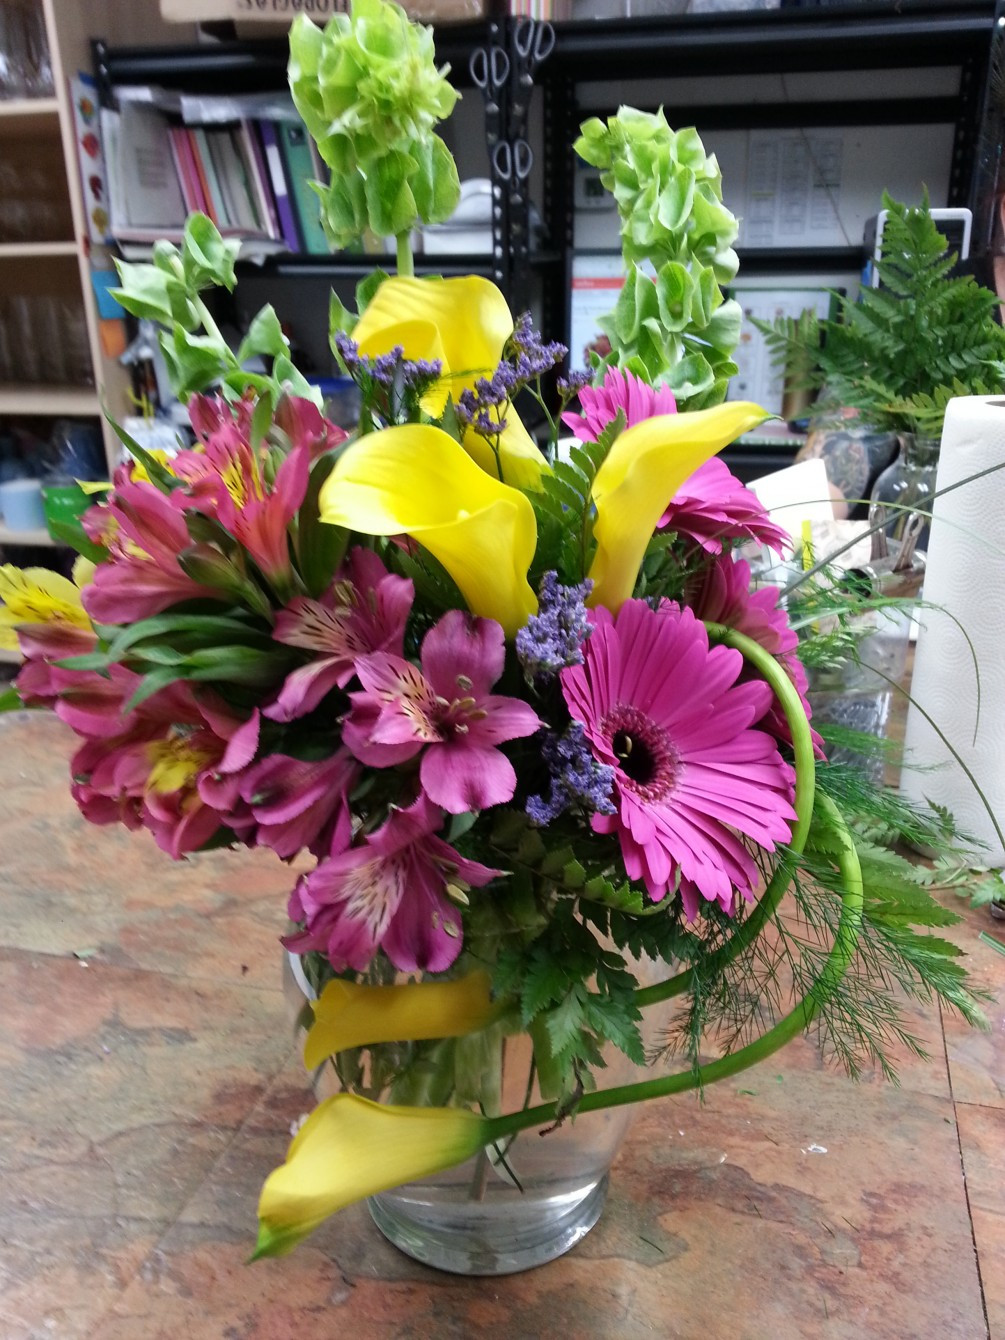 gerbera daisy in vase of curvy callas within this vase arrangement with yellow miniature calla lilies hot pink gerber daisies